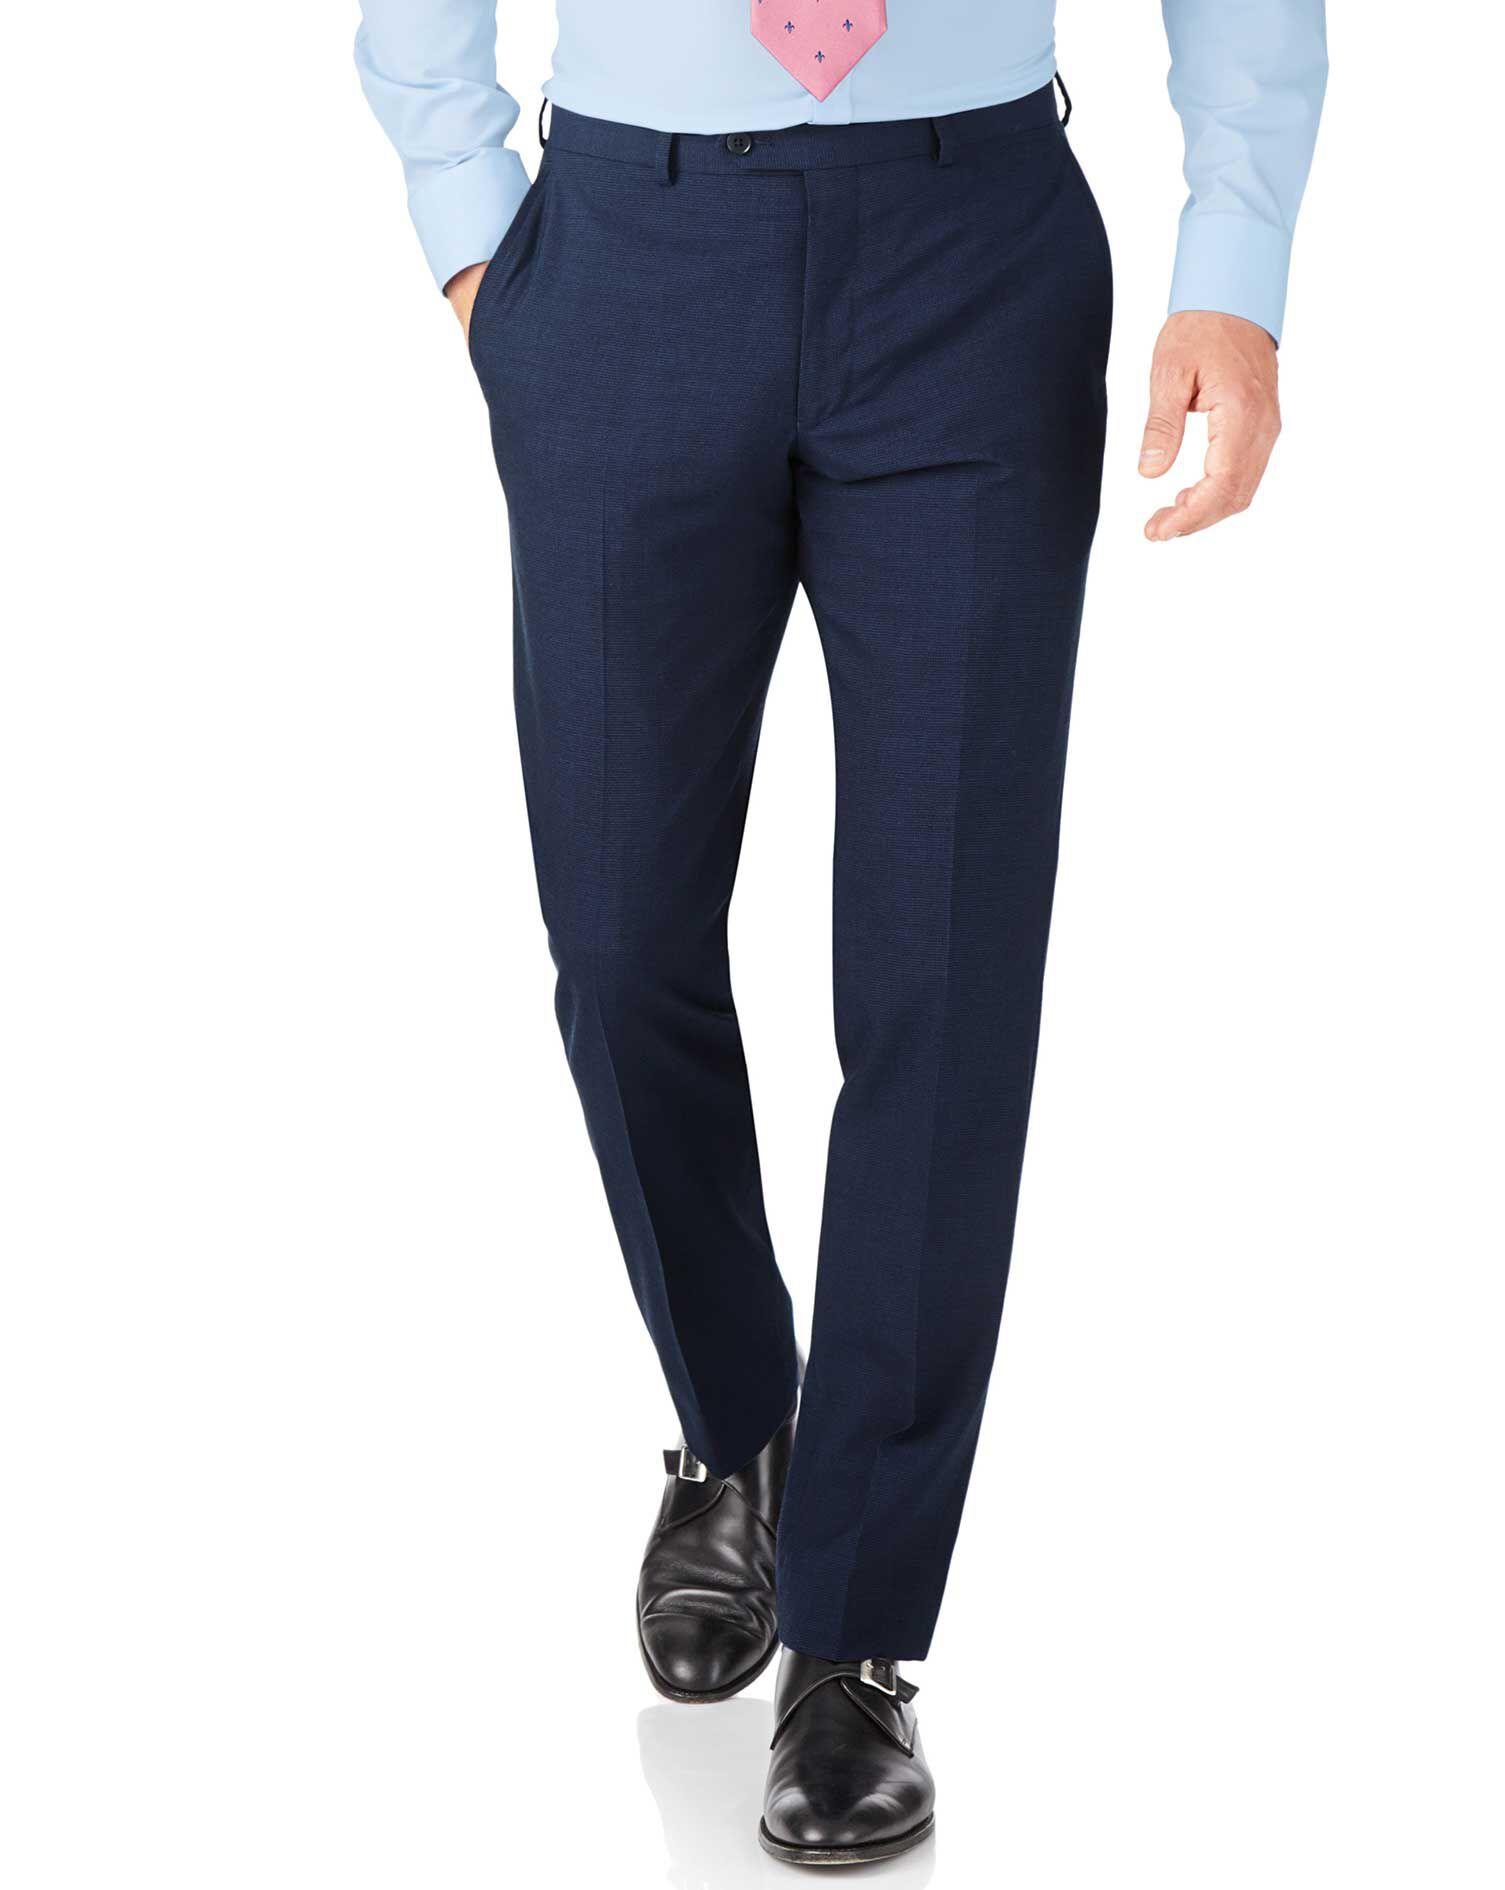 Indigo Blue Puppytooth Slim Fit Panama Business Suit Trouser Size W38 L32 by Charles Tyrwhitt